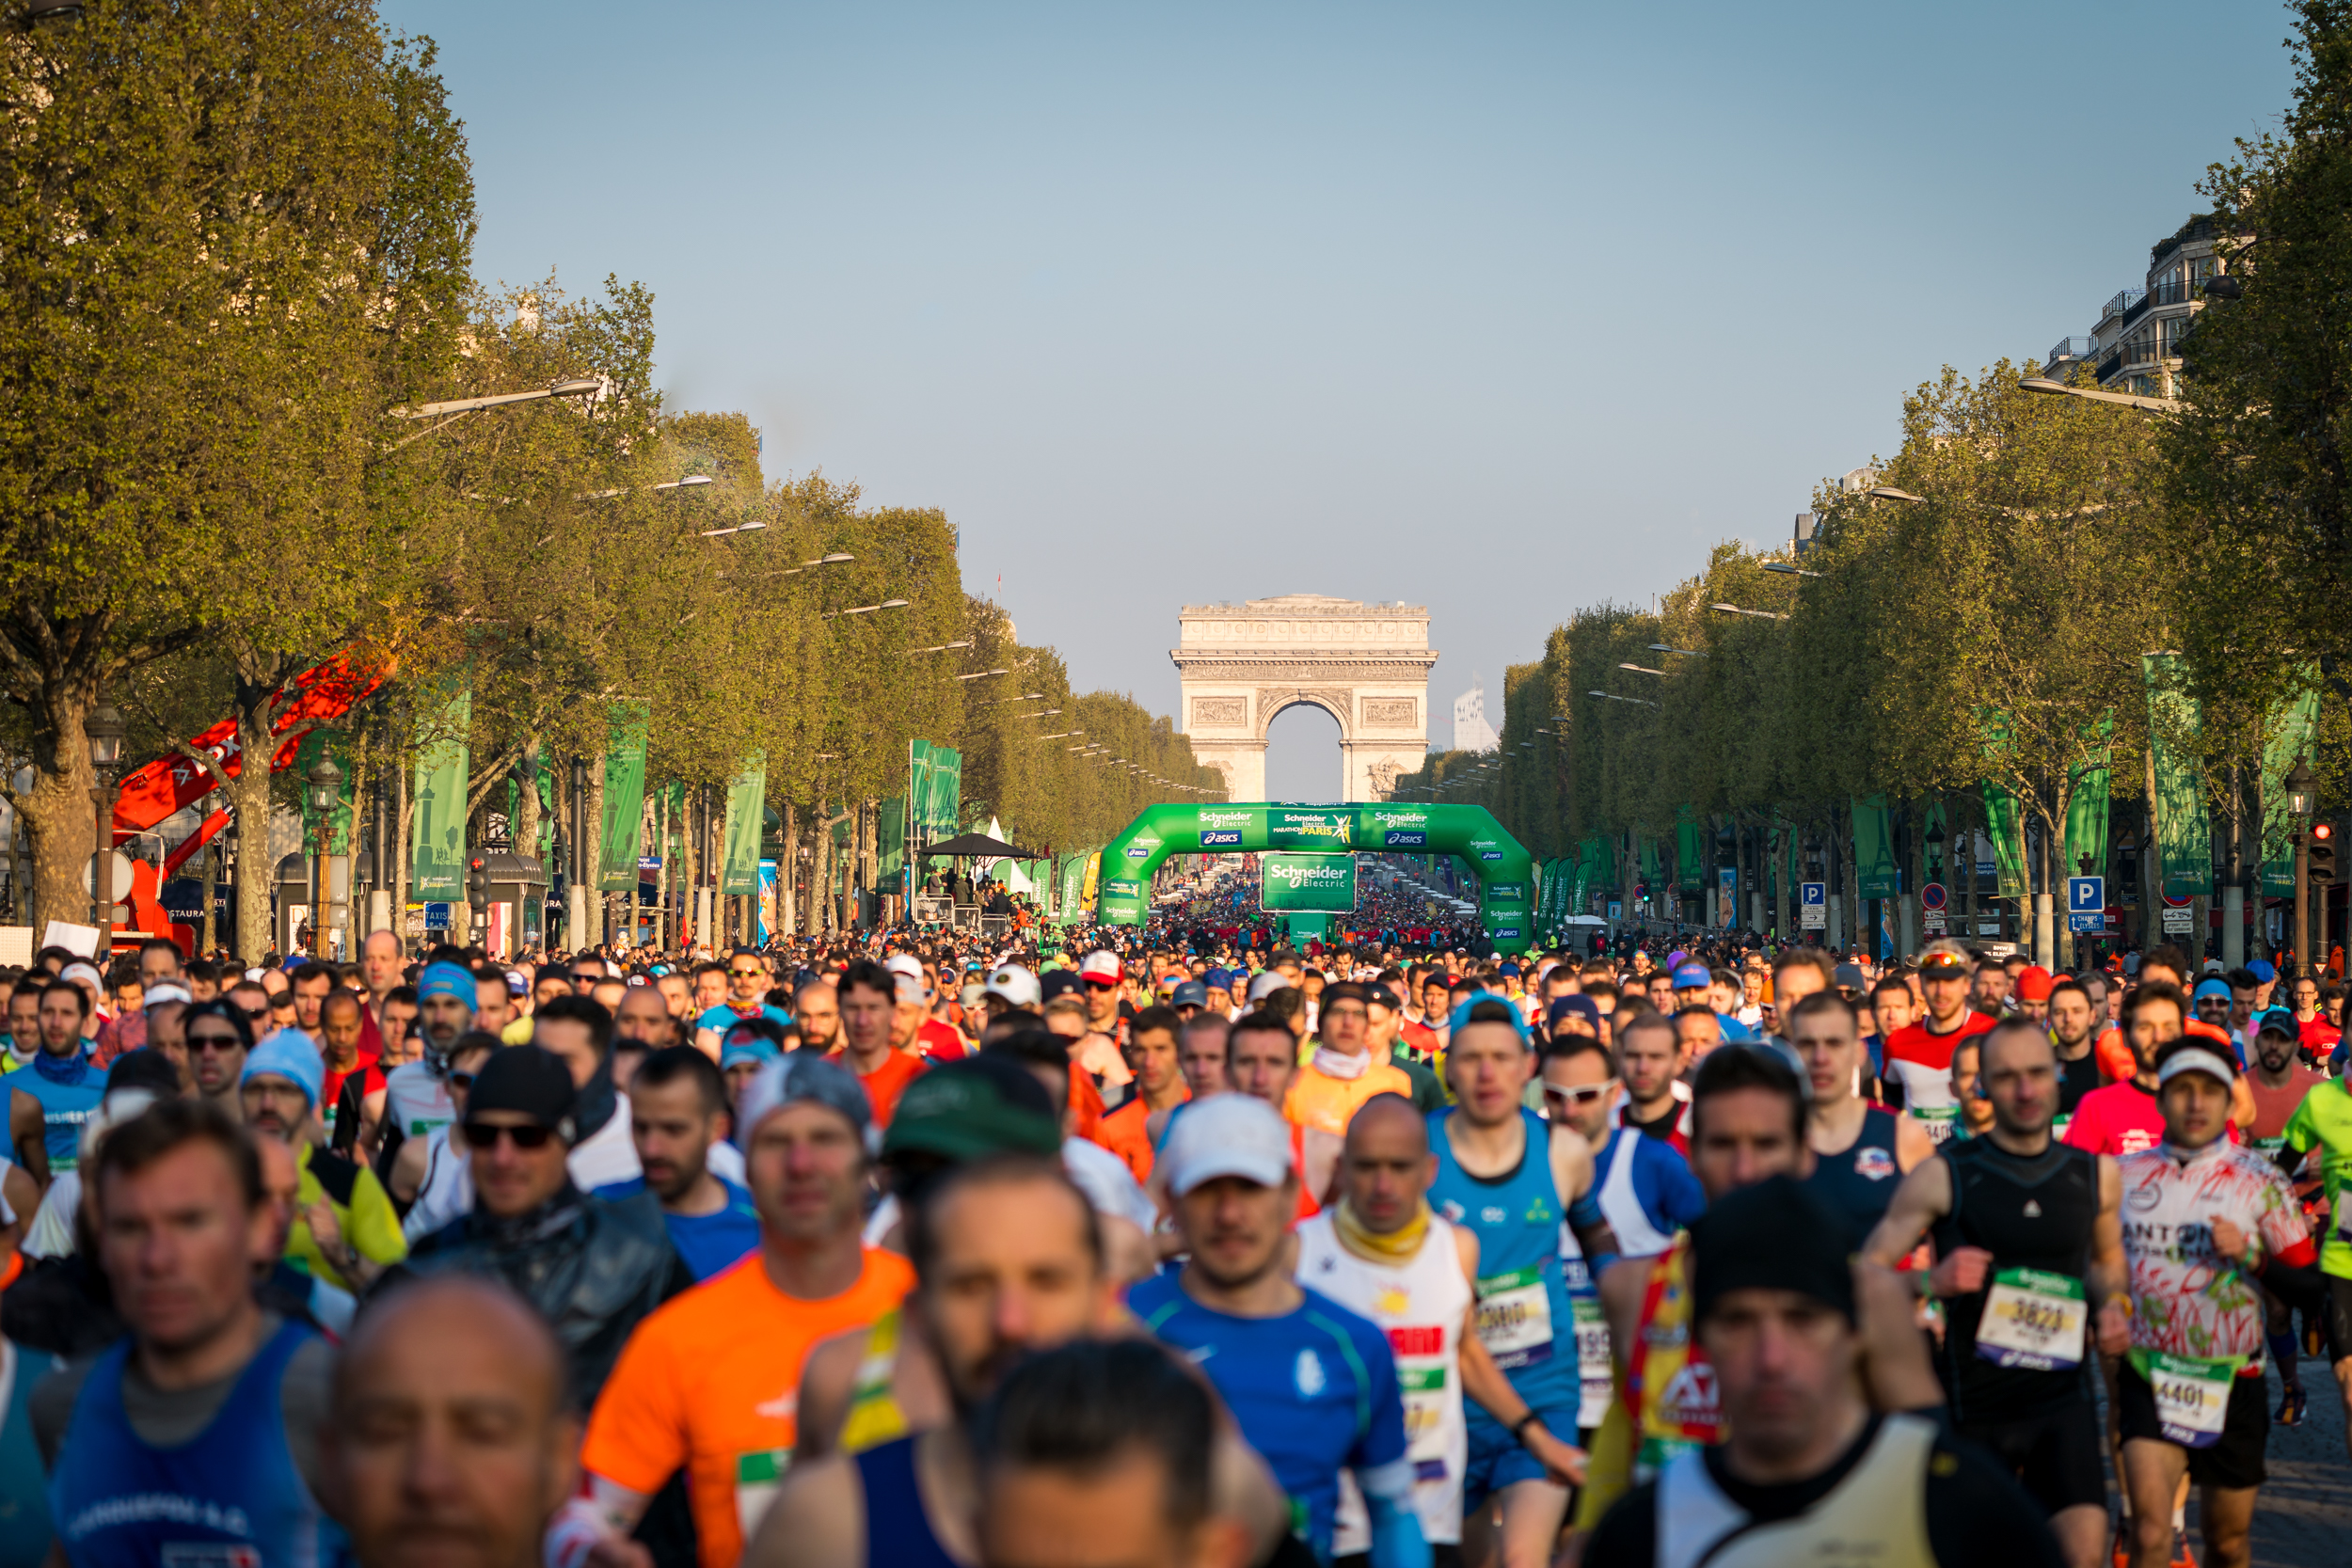 BMW_Marathon Paris 2019_Florian Leger_SHARE & DARE_HD_ N°-49.jpg